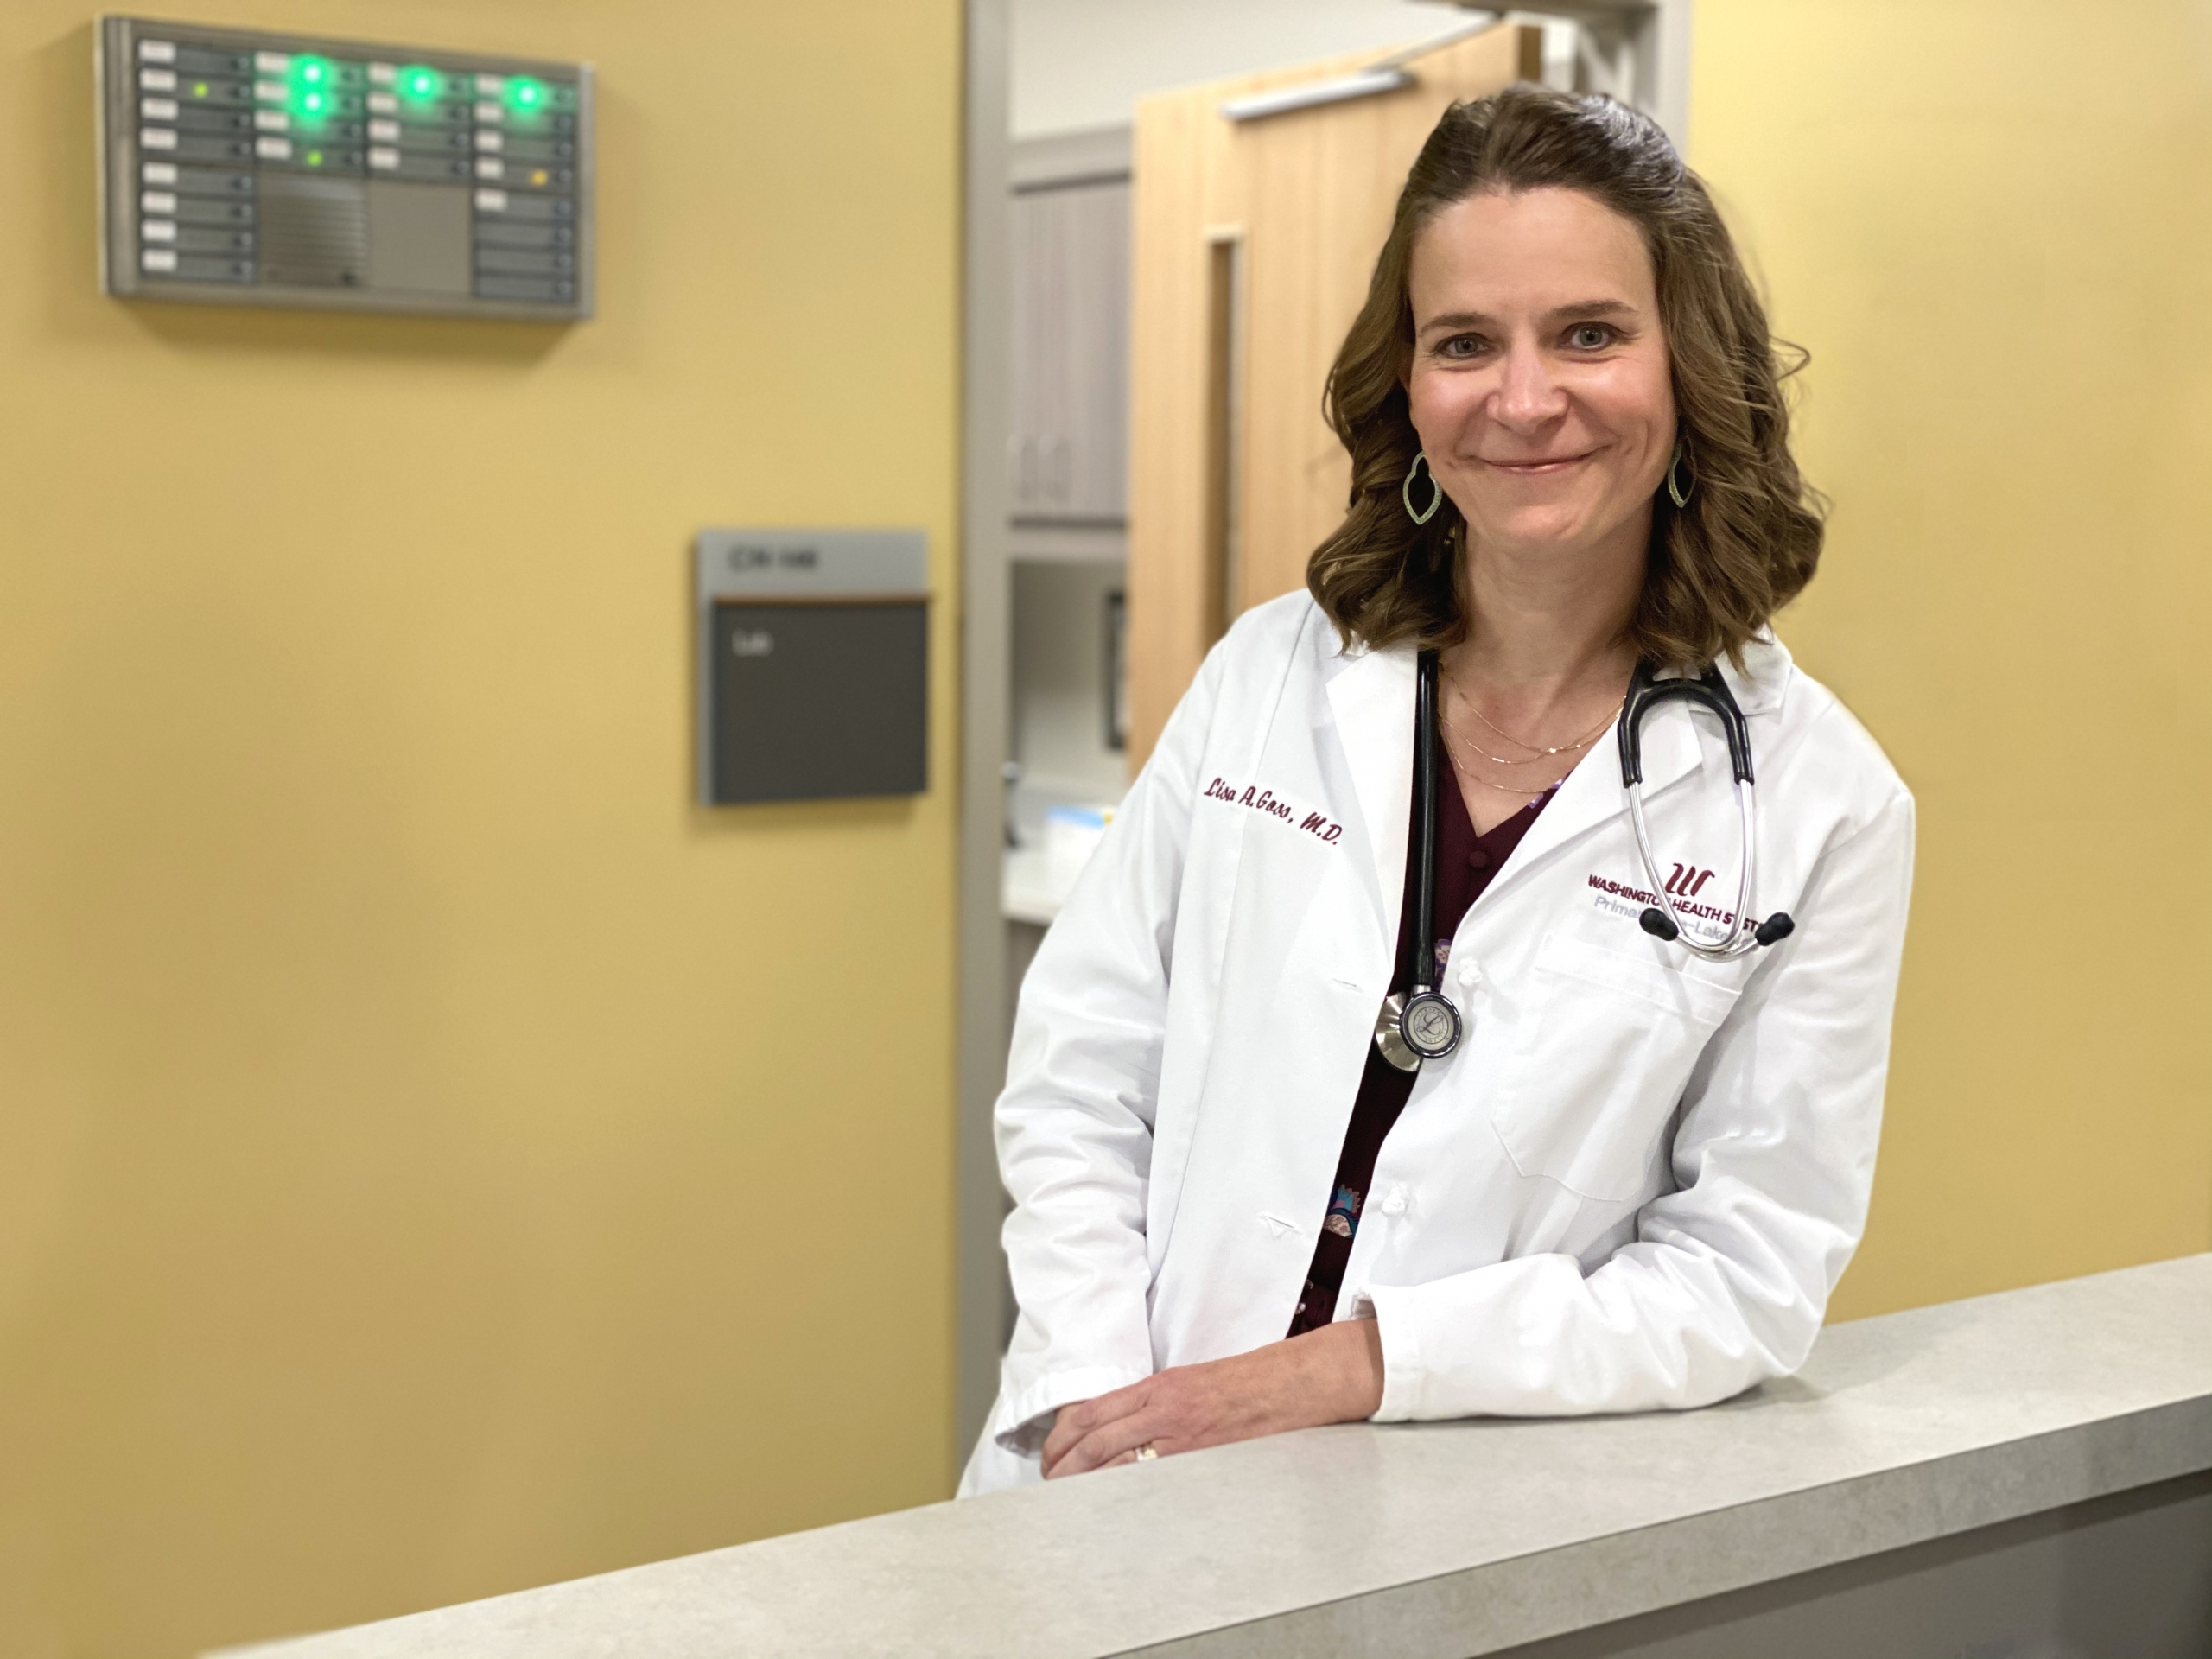 Lisa Goss, MD